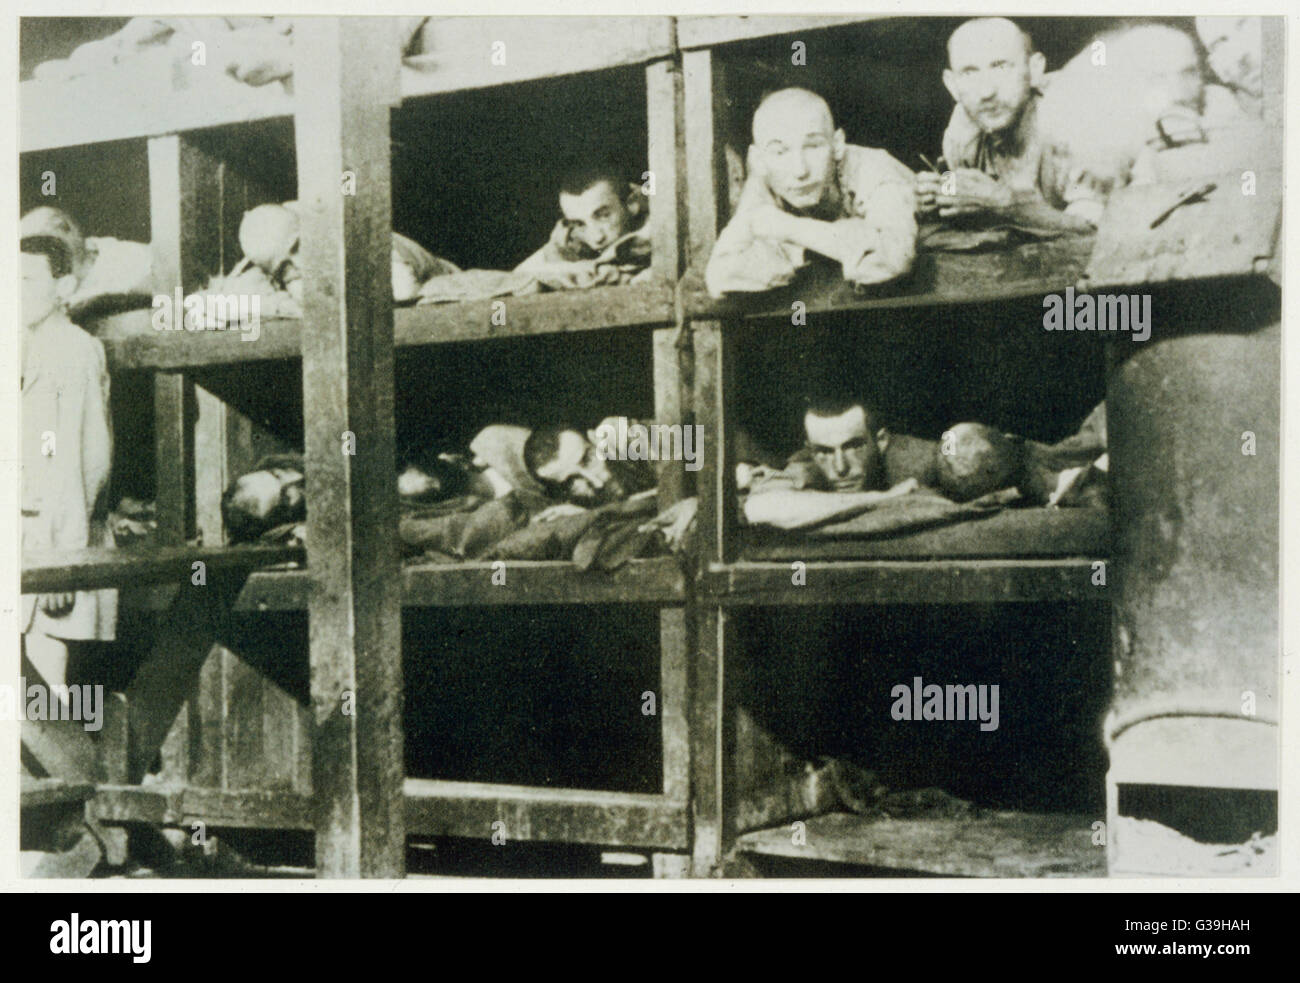 Inmates at Auschwitz lying in  their bunks.  After the conquest of Poland,  Auschwitz was transformed into  an Extermination - Stock Image